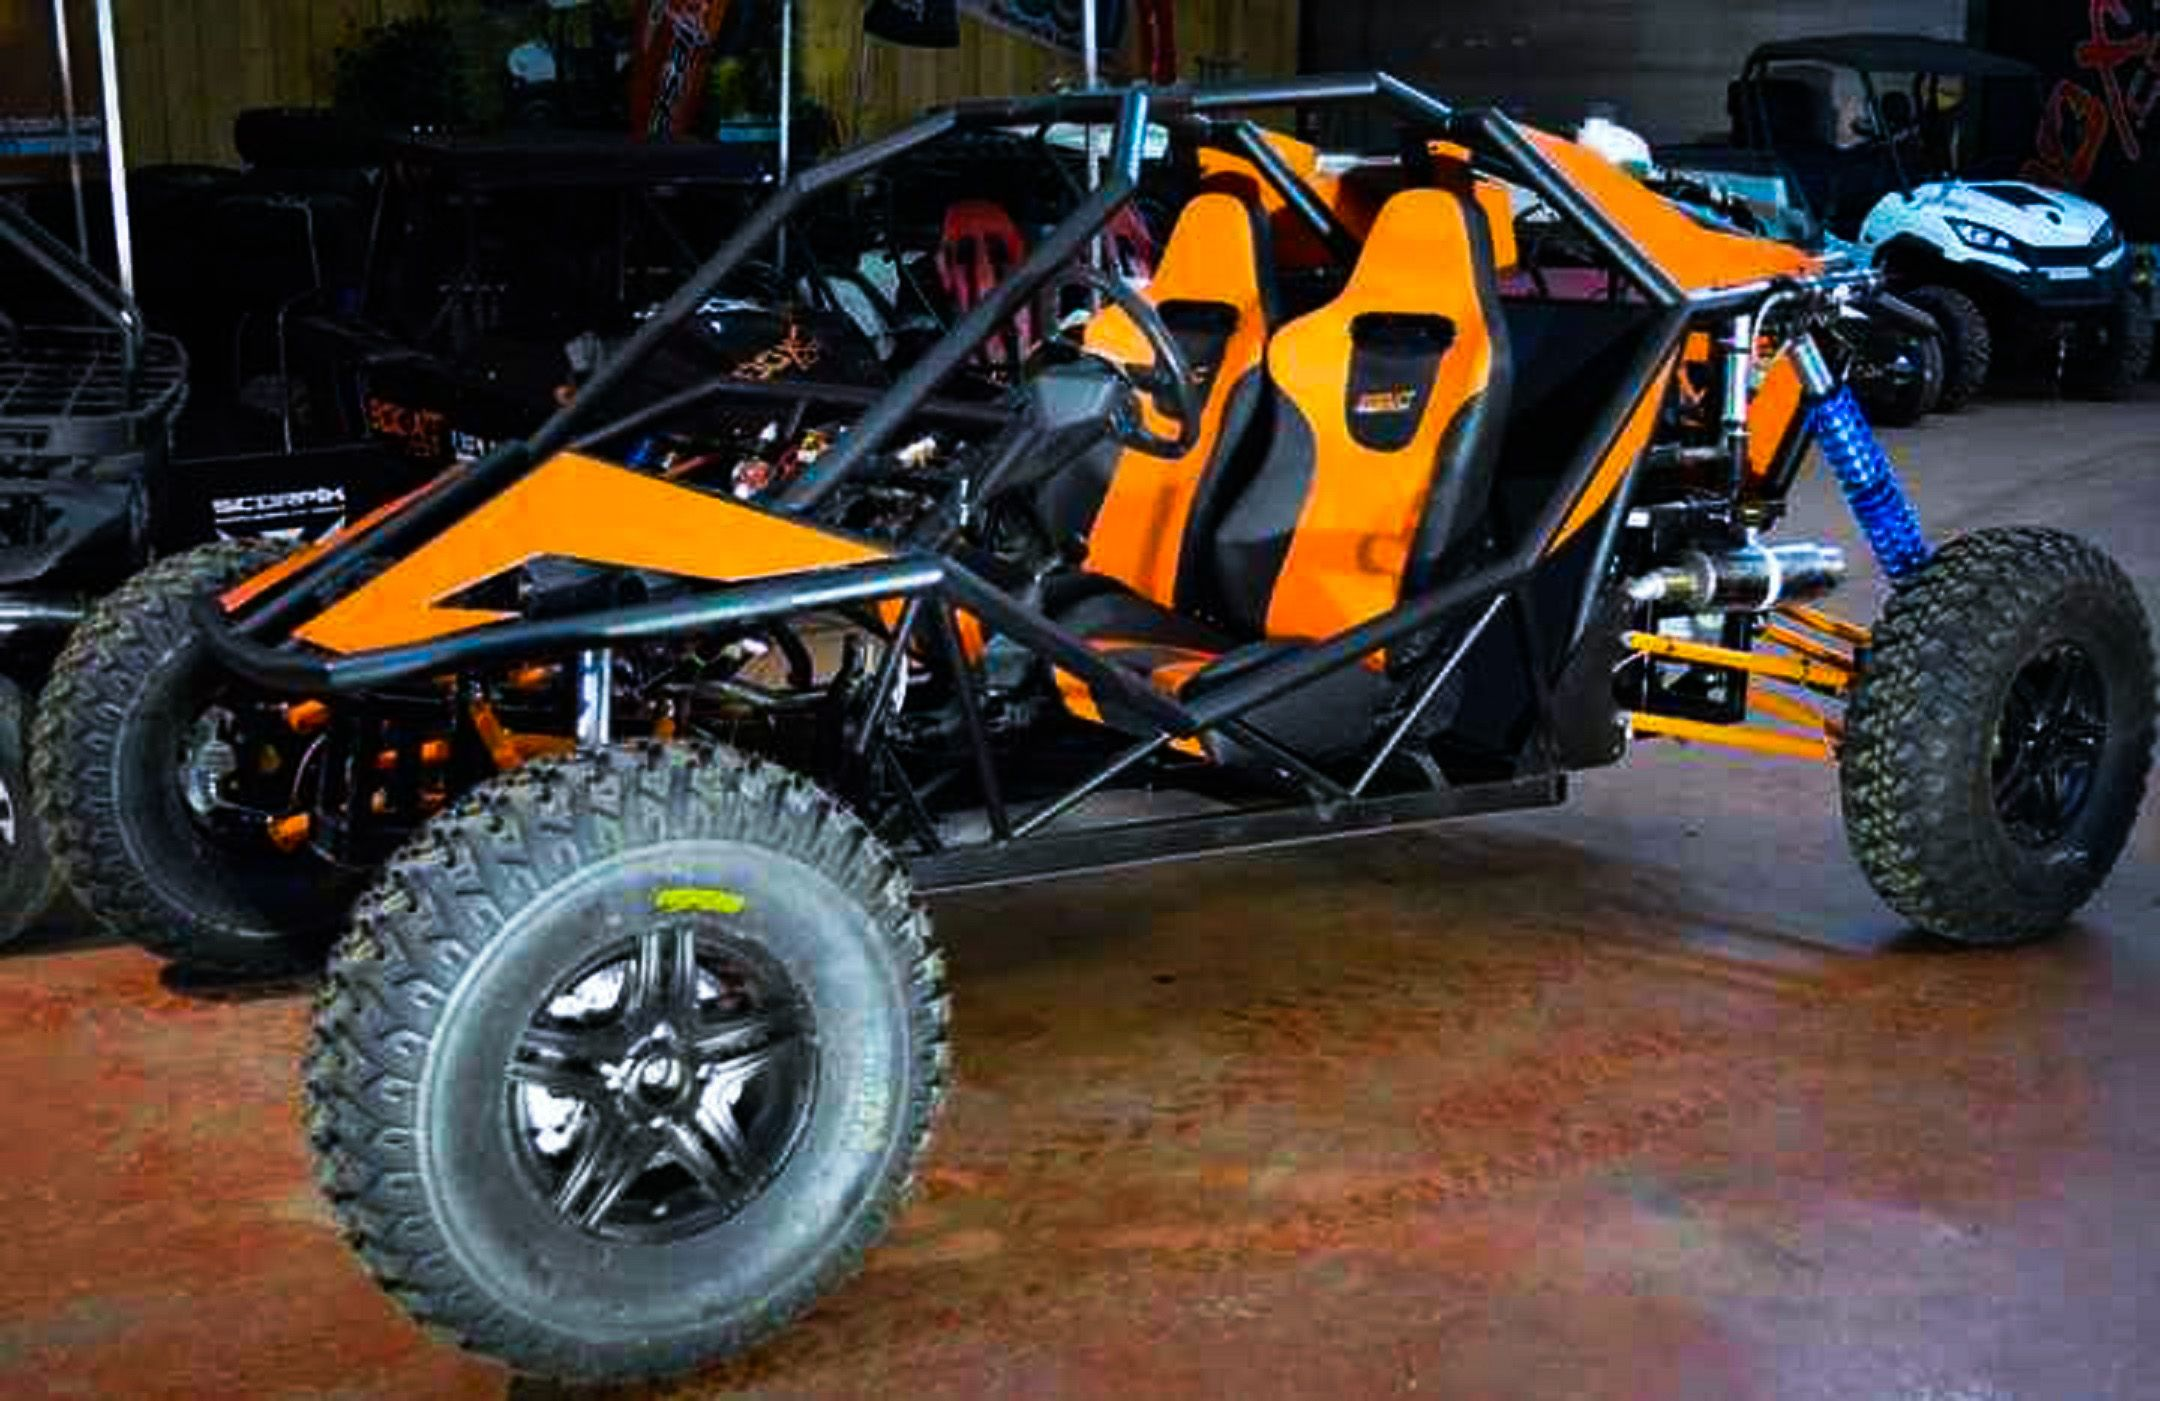 Pin by Nate Folkersen on offroading | Off road buggy, Go